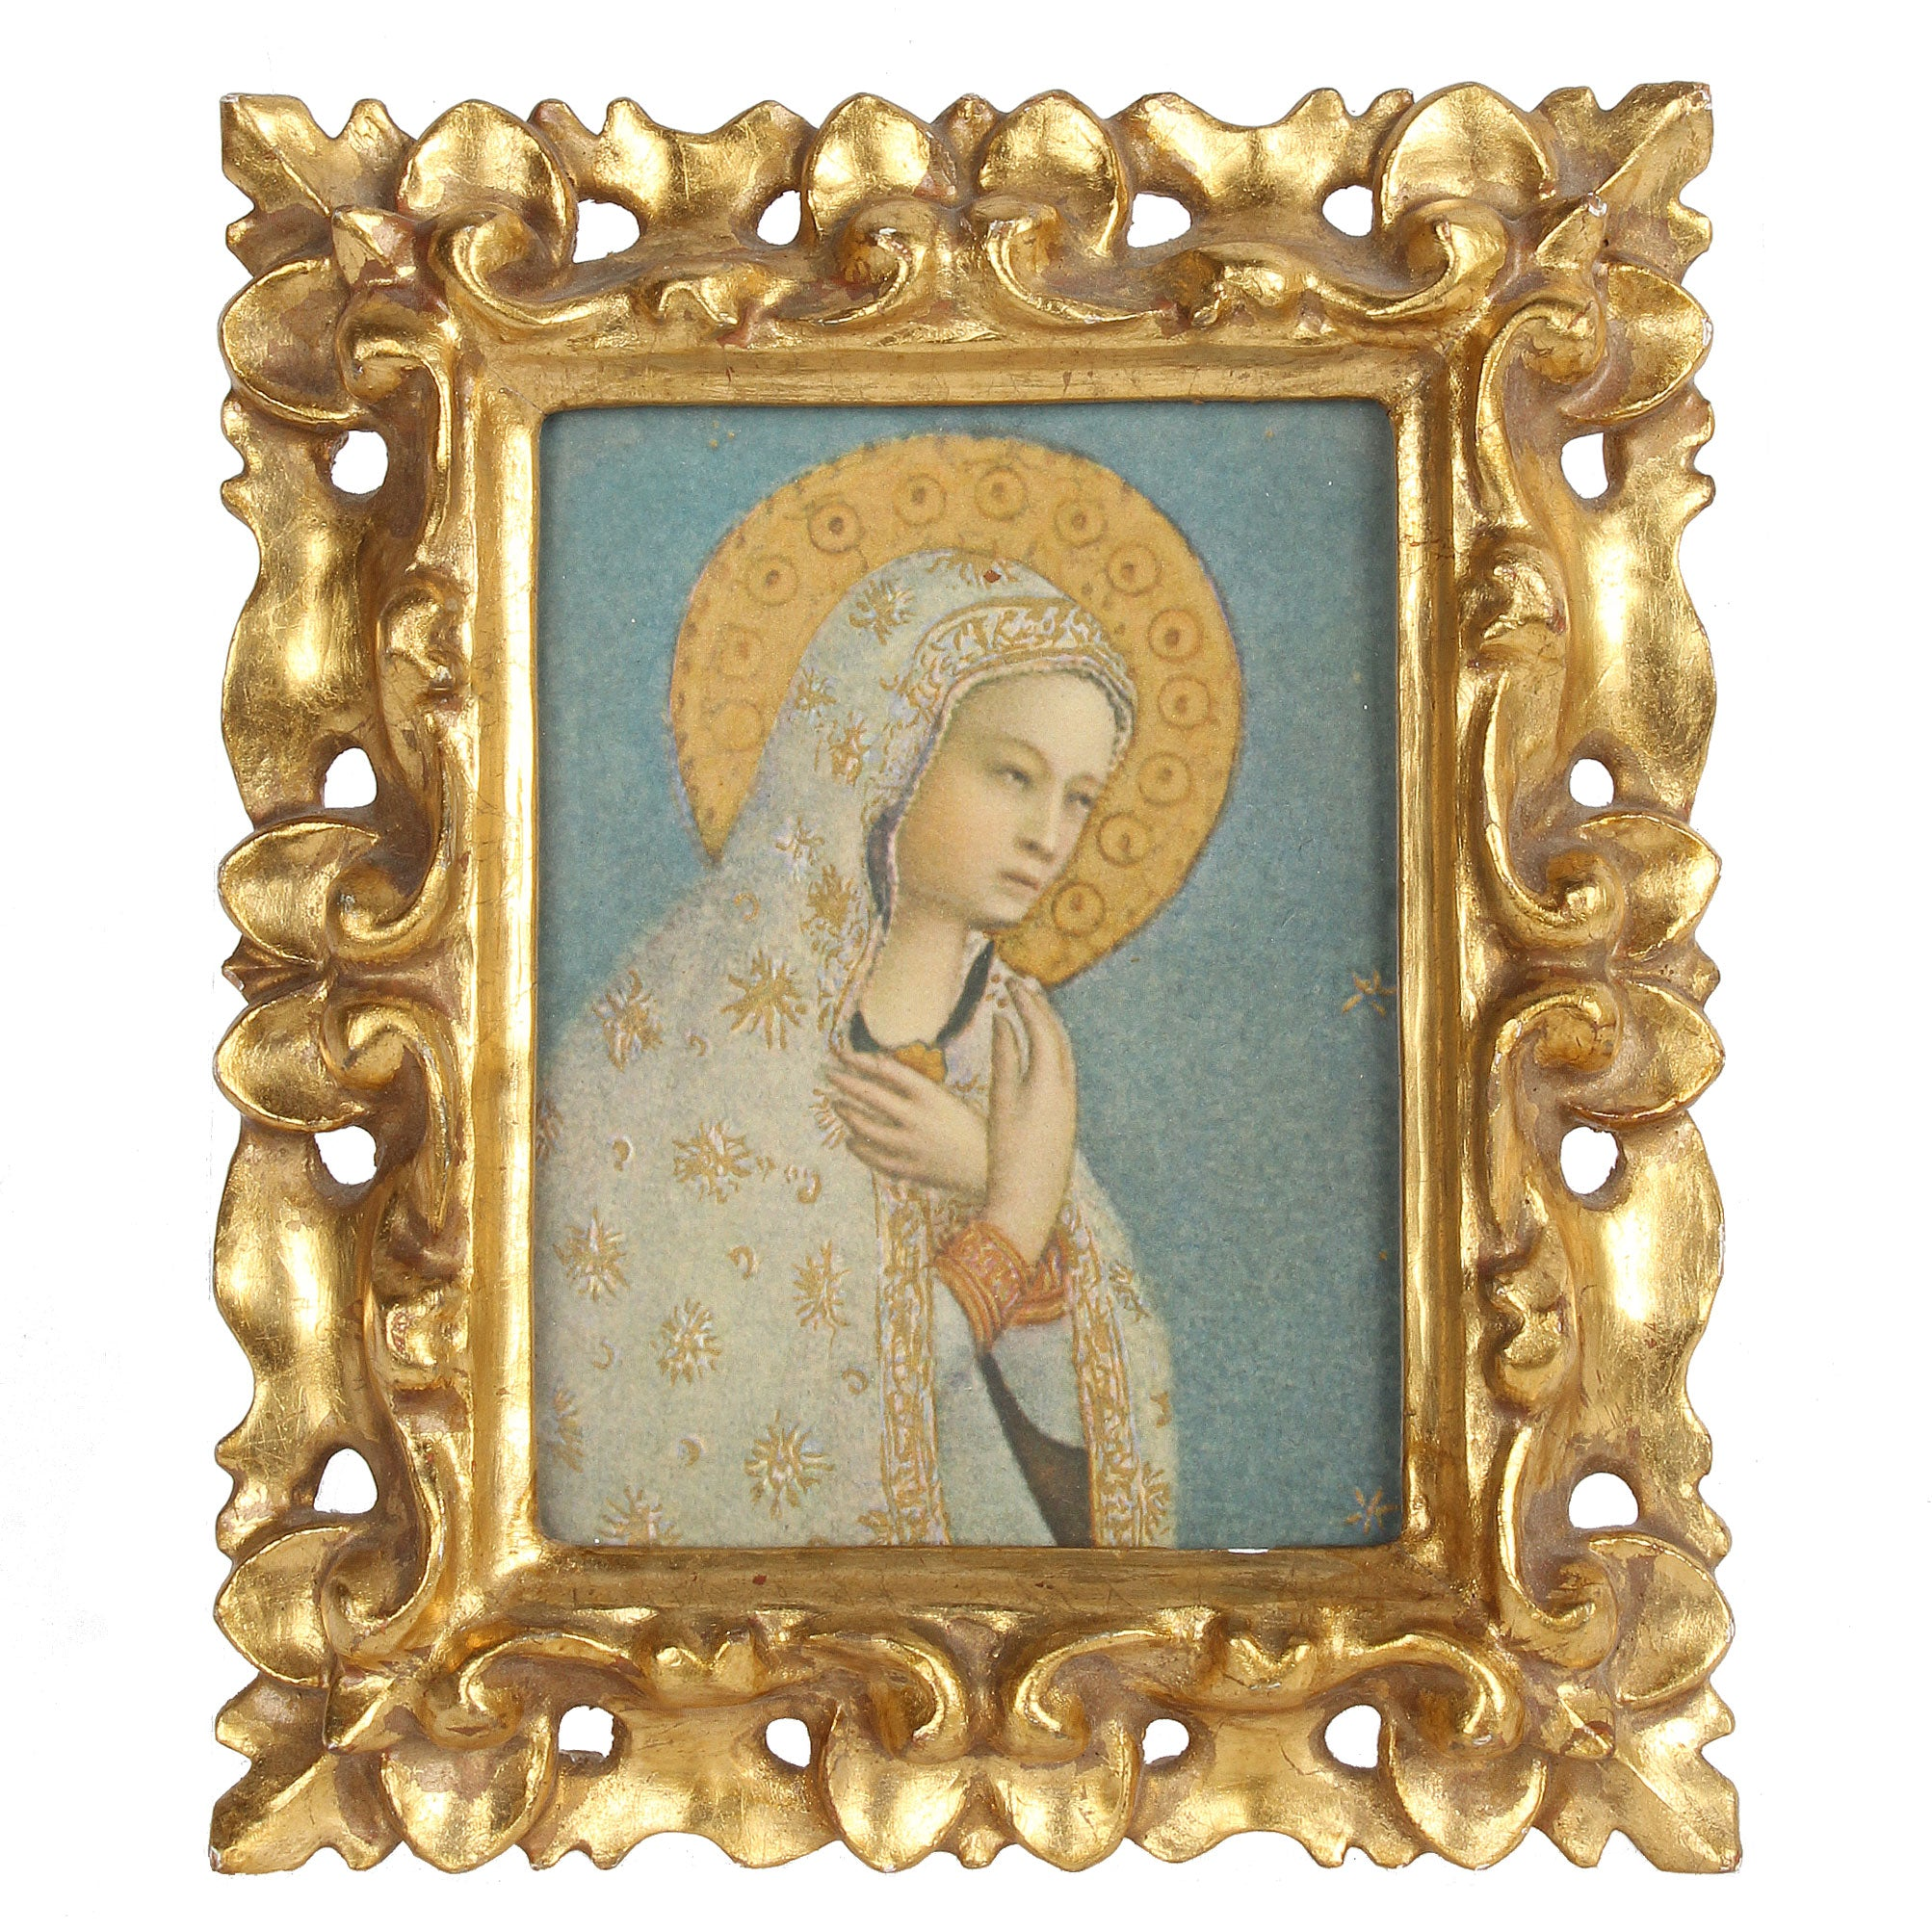 Small Vintage Florentine Gilt Frame With Madonna Image Fatto A